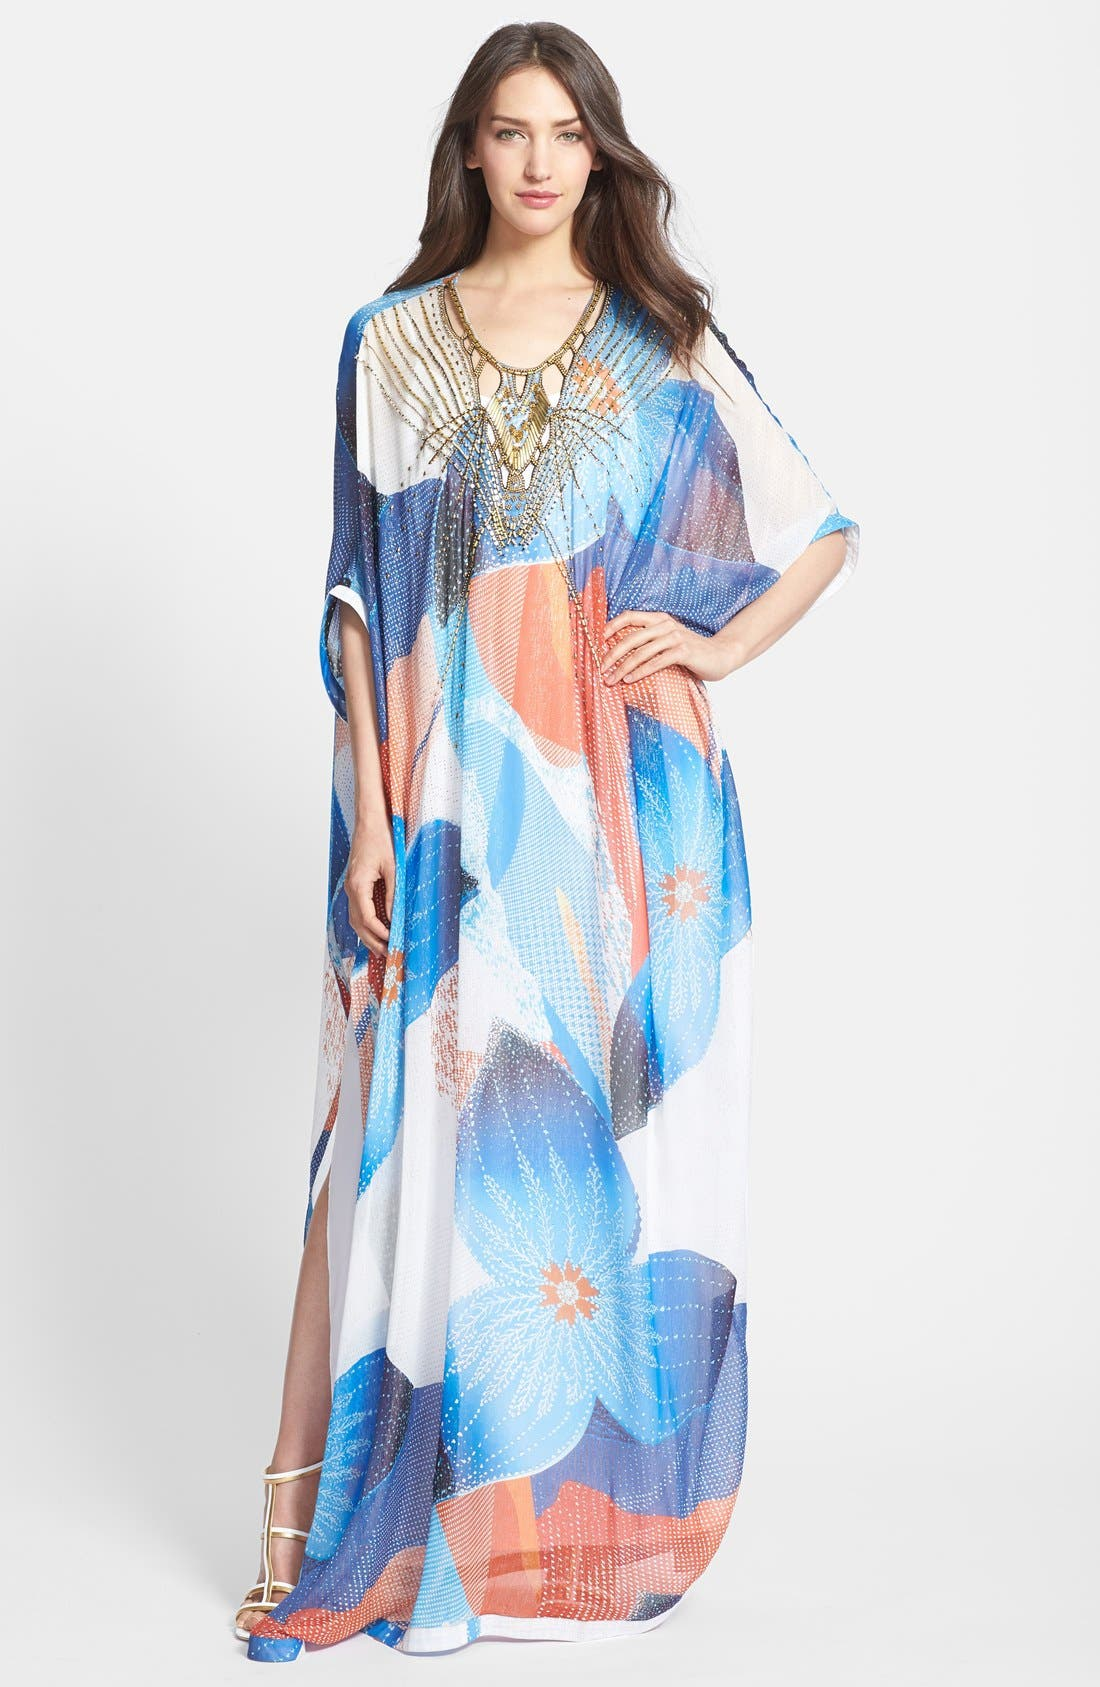 Alternate Image 1 Selected - Diane von Furstenberg 'Clare' Beaded Print Silk Blend Caftan